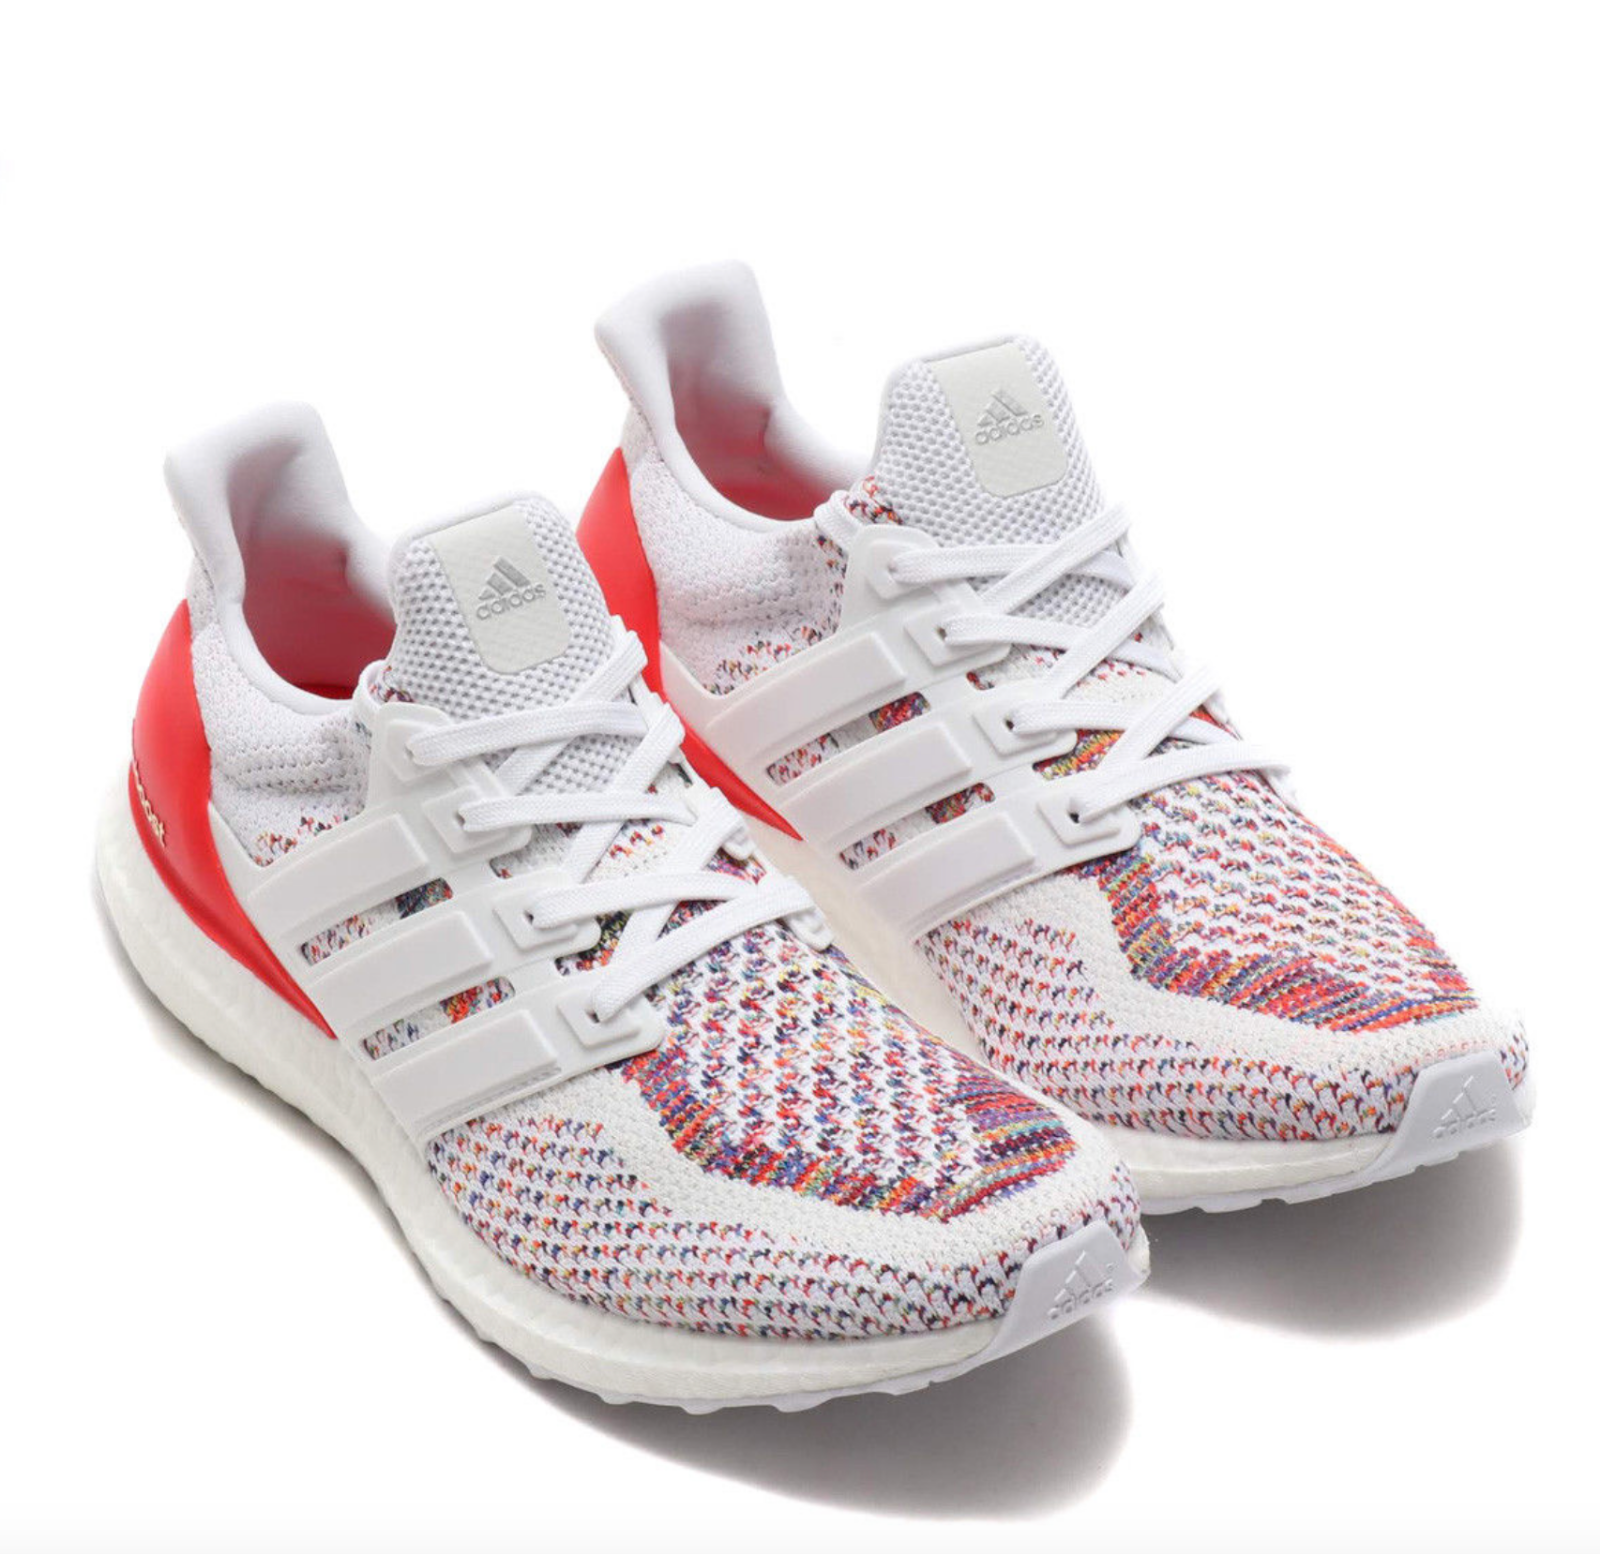 Details about Adidas Ultra Boost White Red MultiColor Size 15. BB3911 NMD Yeezy